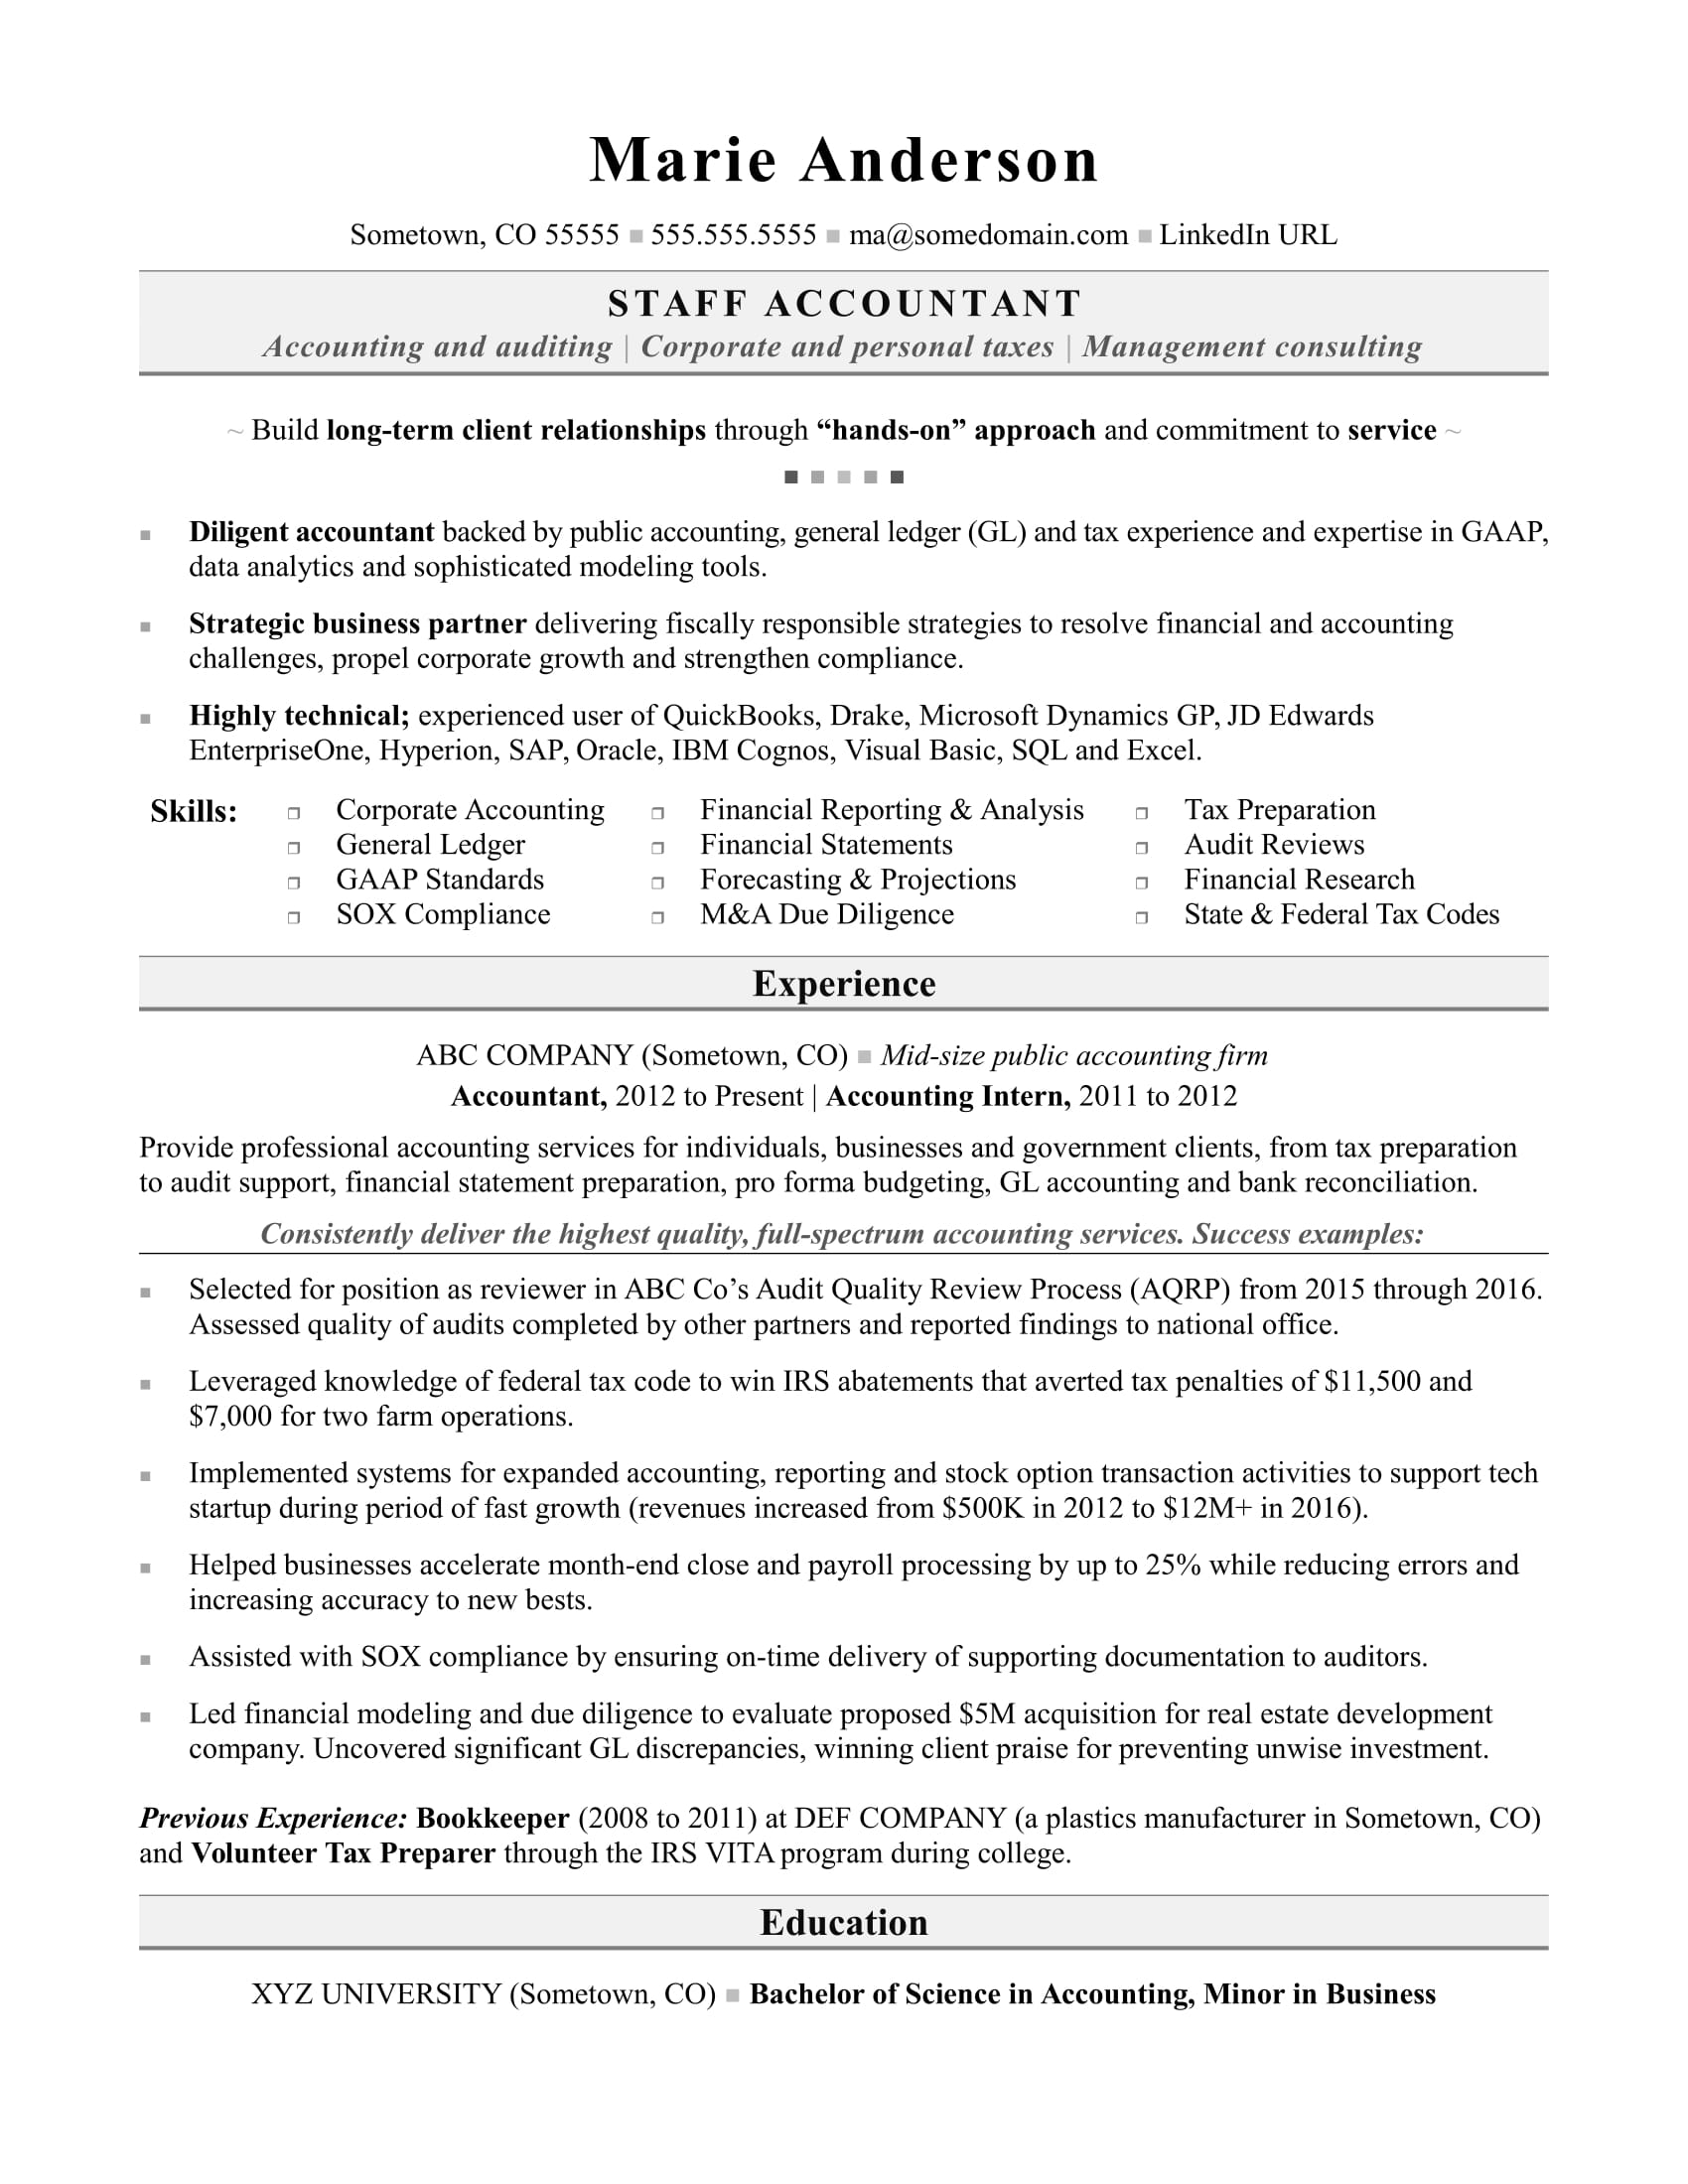 accounting resume - Romeo.landinez.co